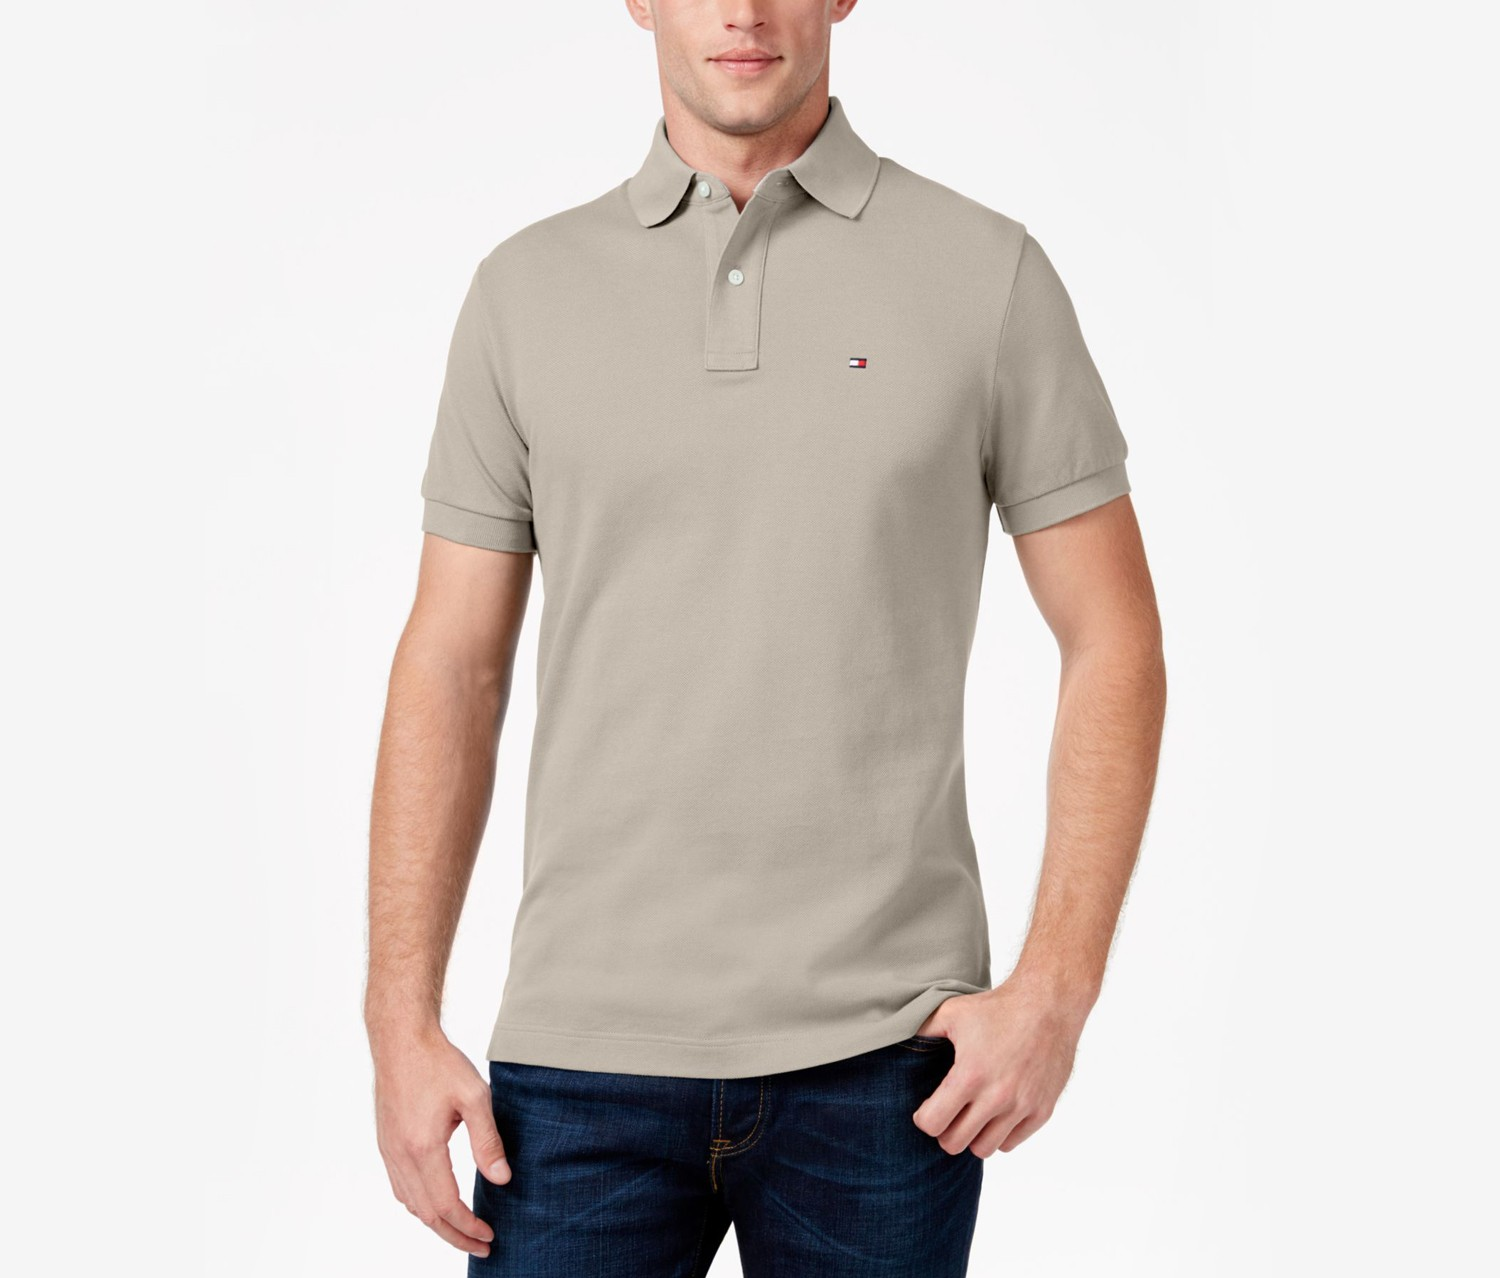 a96400ecd Shop Tommy Hilfiger Tommy Hilfiger Men's Custom-Fit Ivy Polo, Fall ...